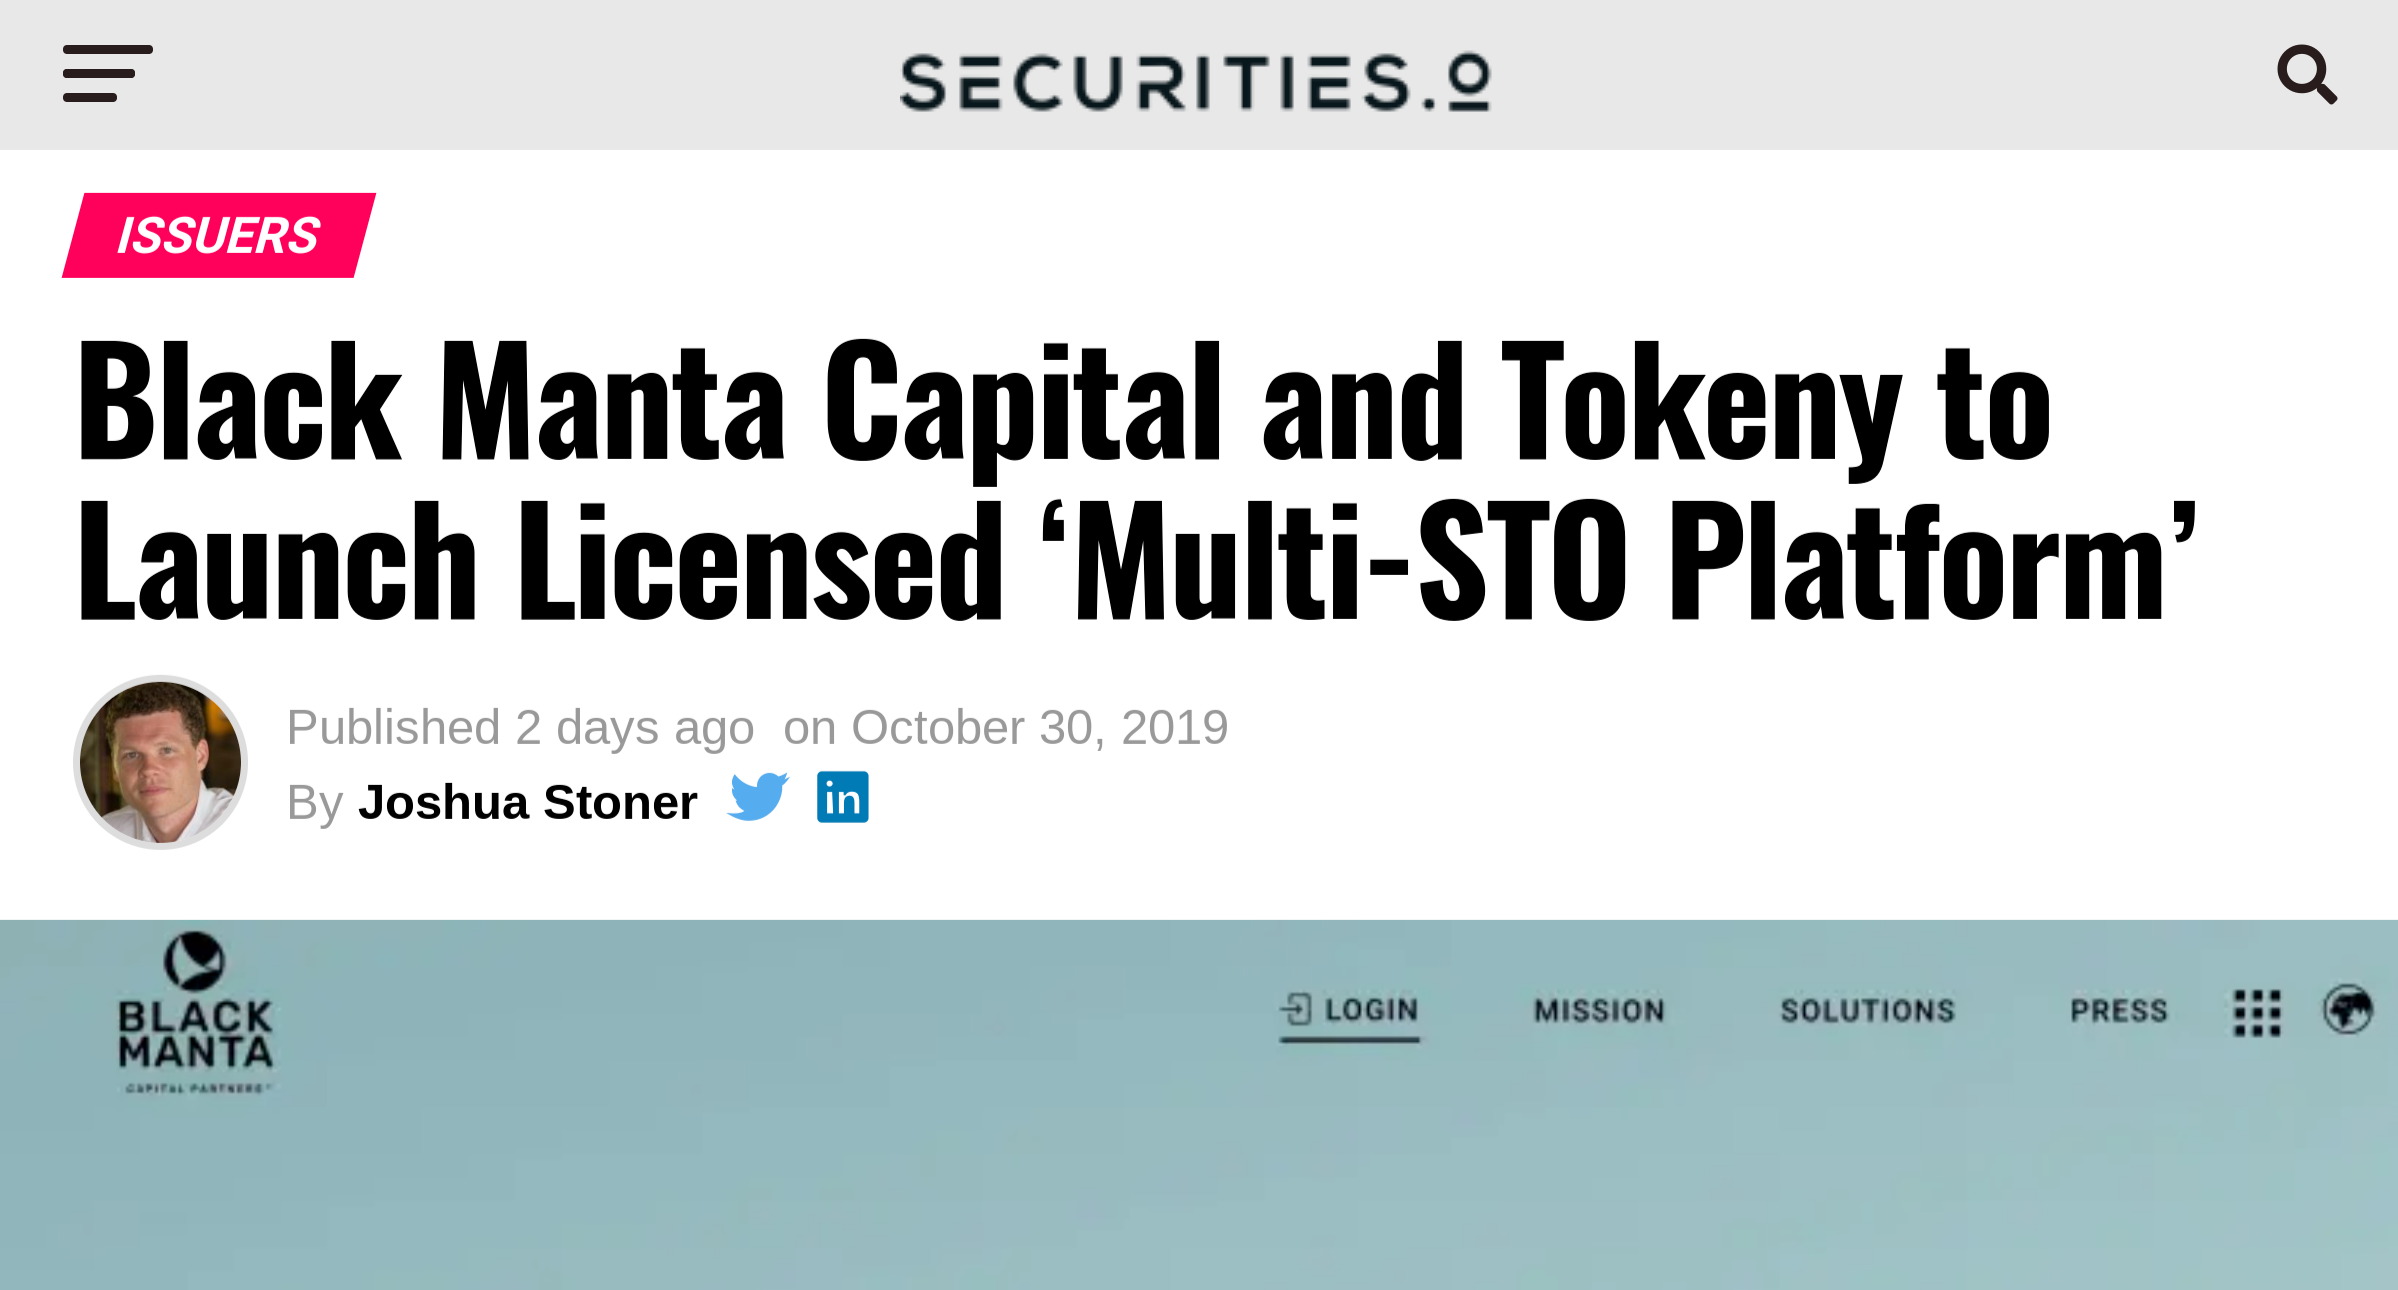 Media Coverage securities.io